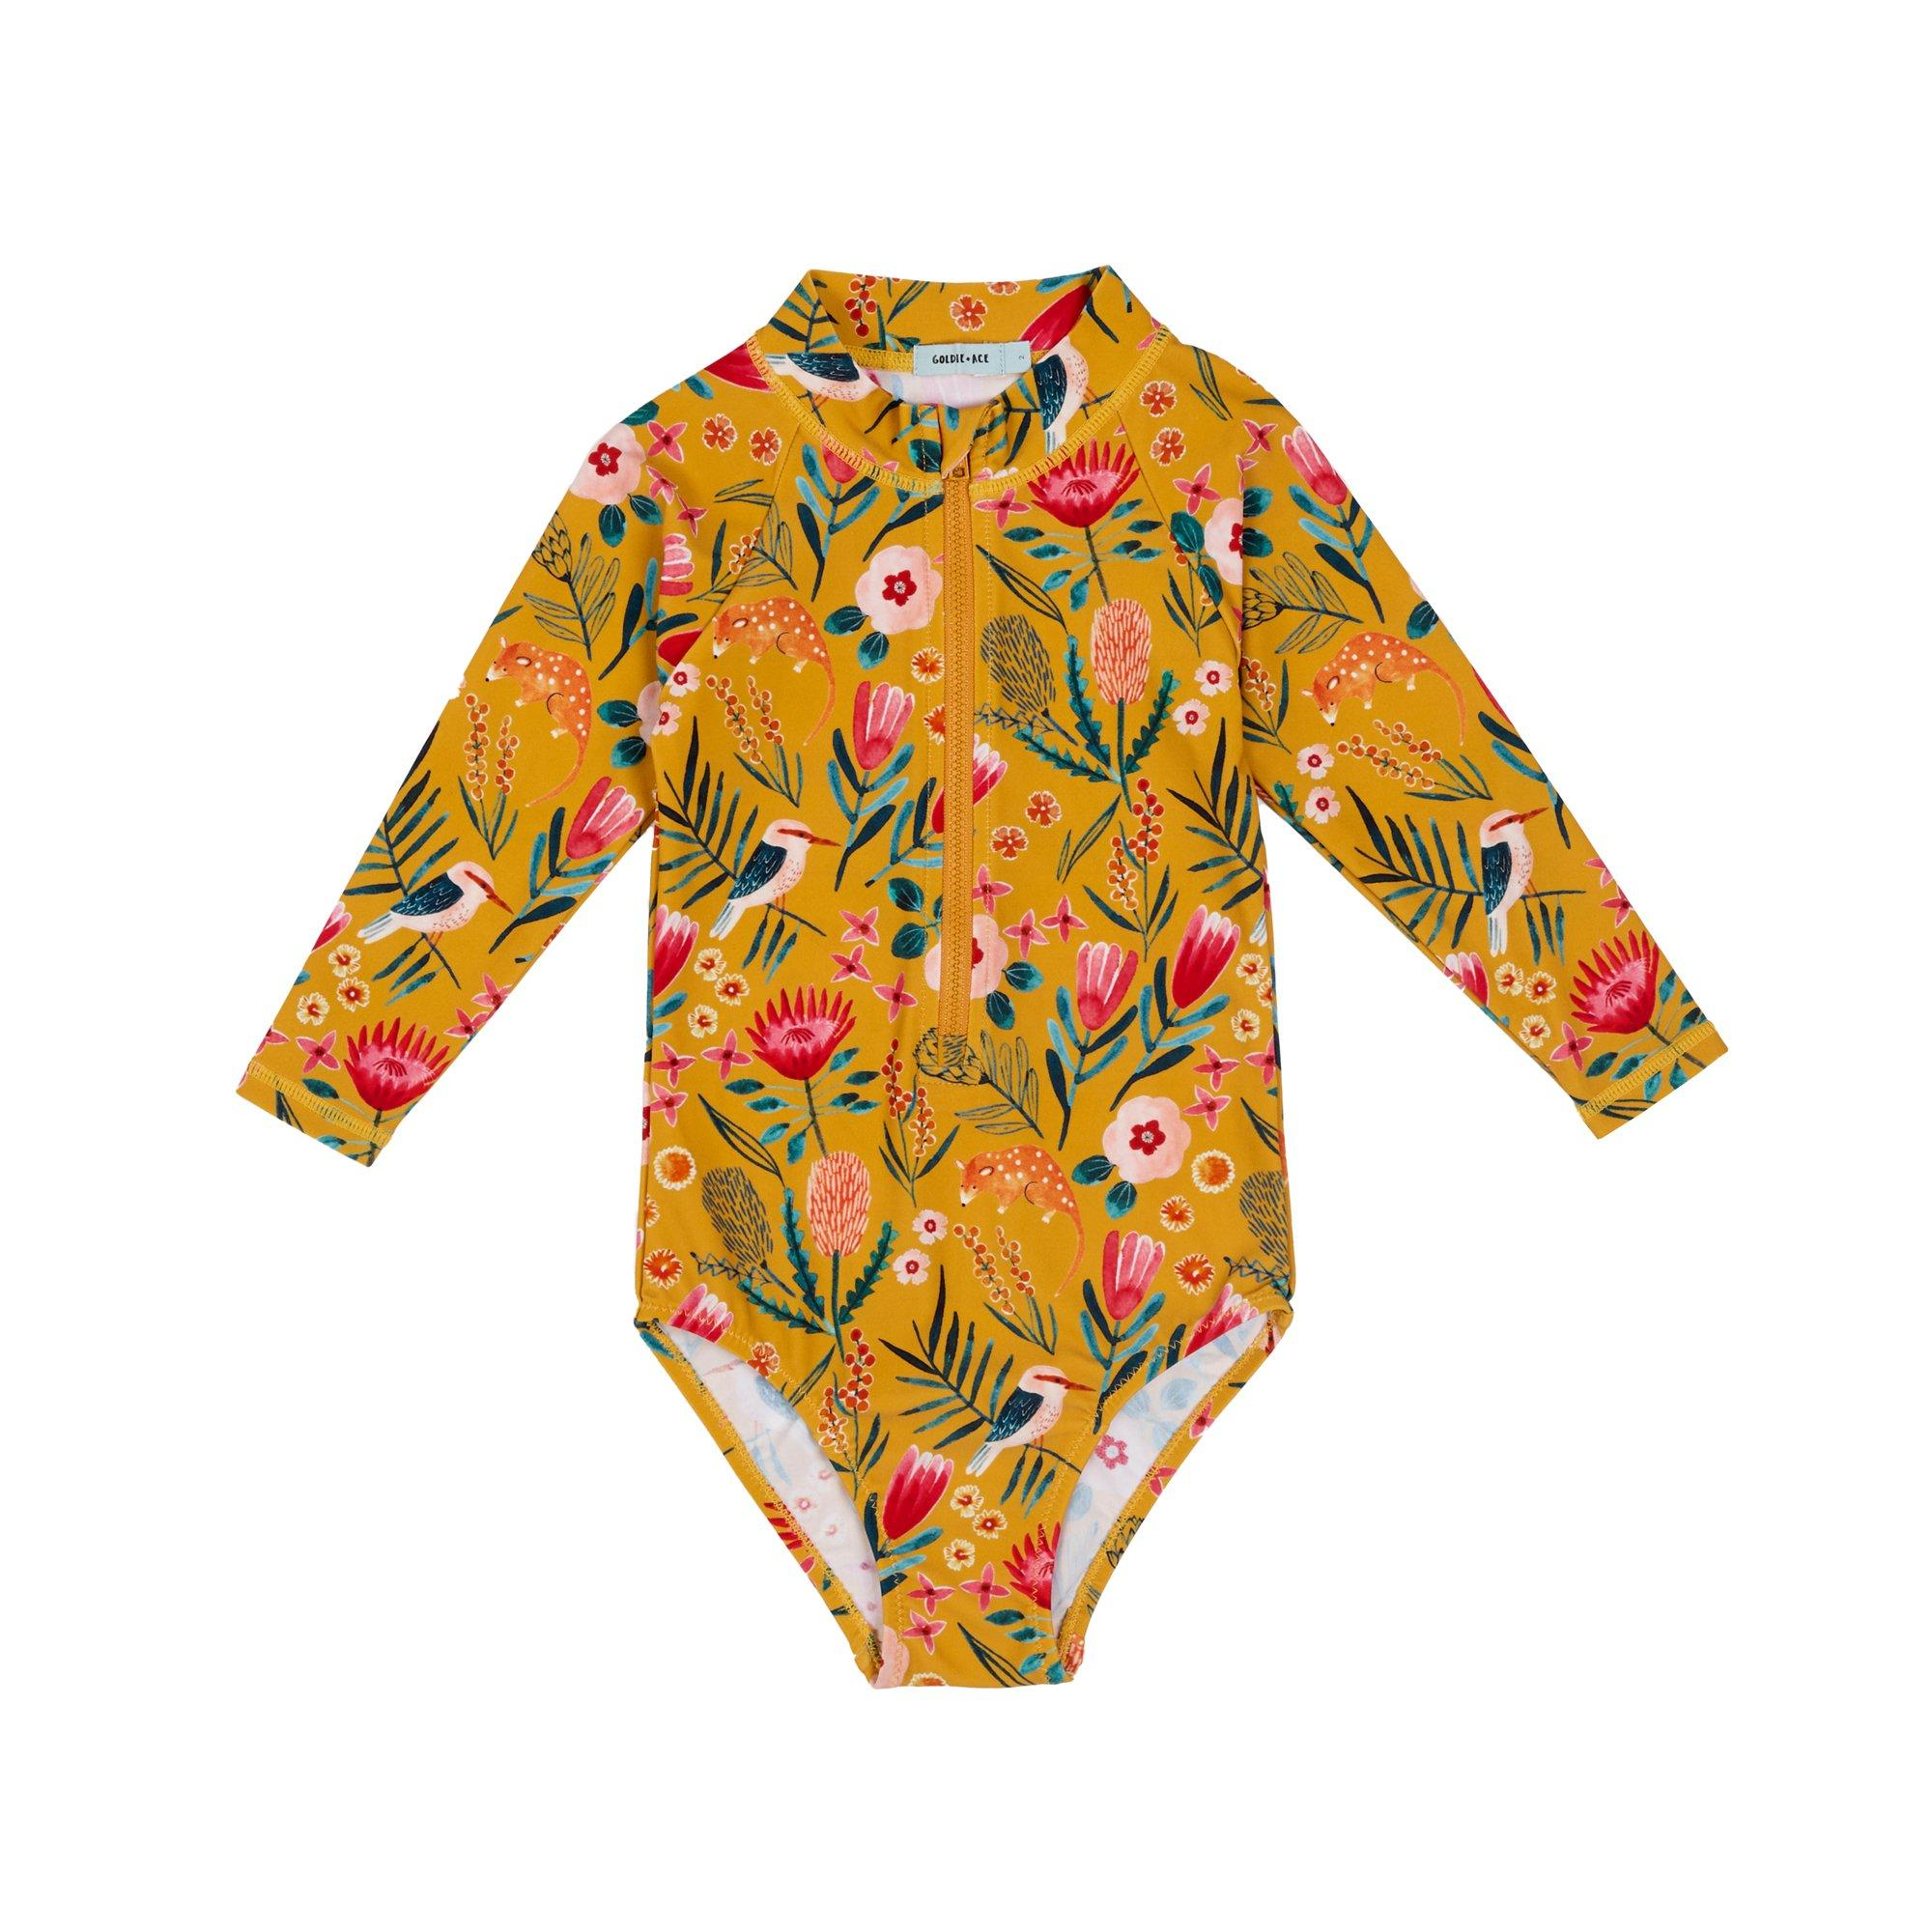 Native Garden Zip Up Sunsuit (Honey)